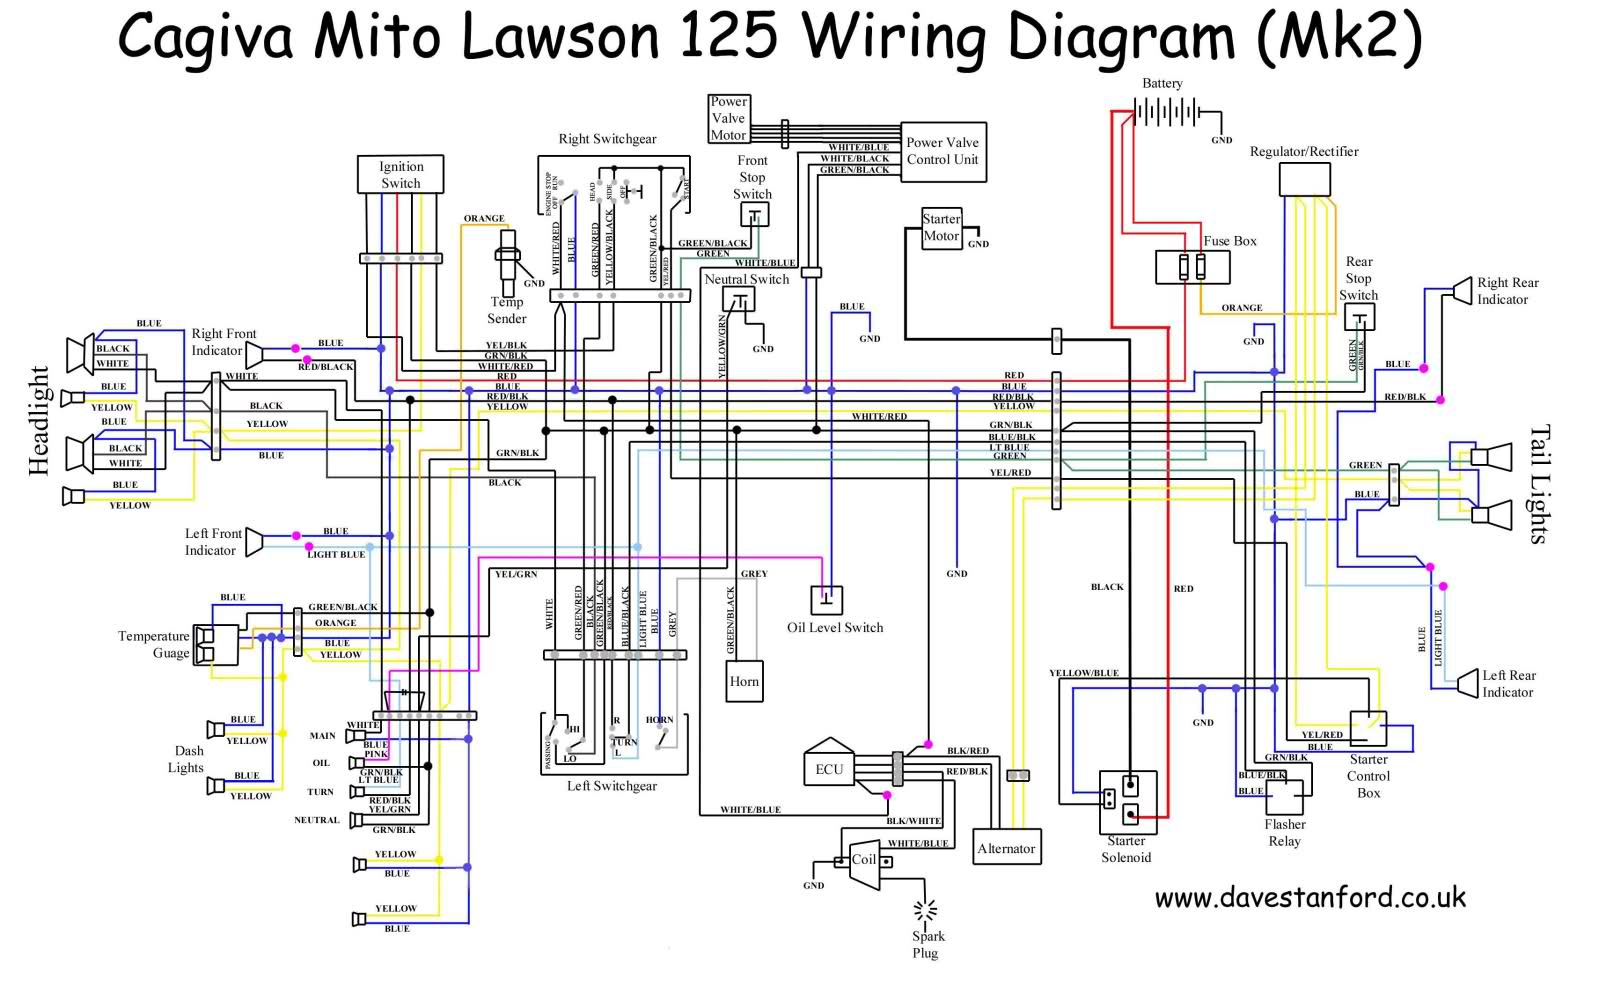 Cagiva Mito 125 Wiring Diagrams Electrics Short Circuit Tester Snap On Find A Guide With Diagram Manual